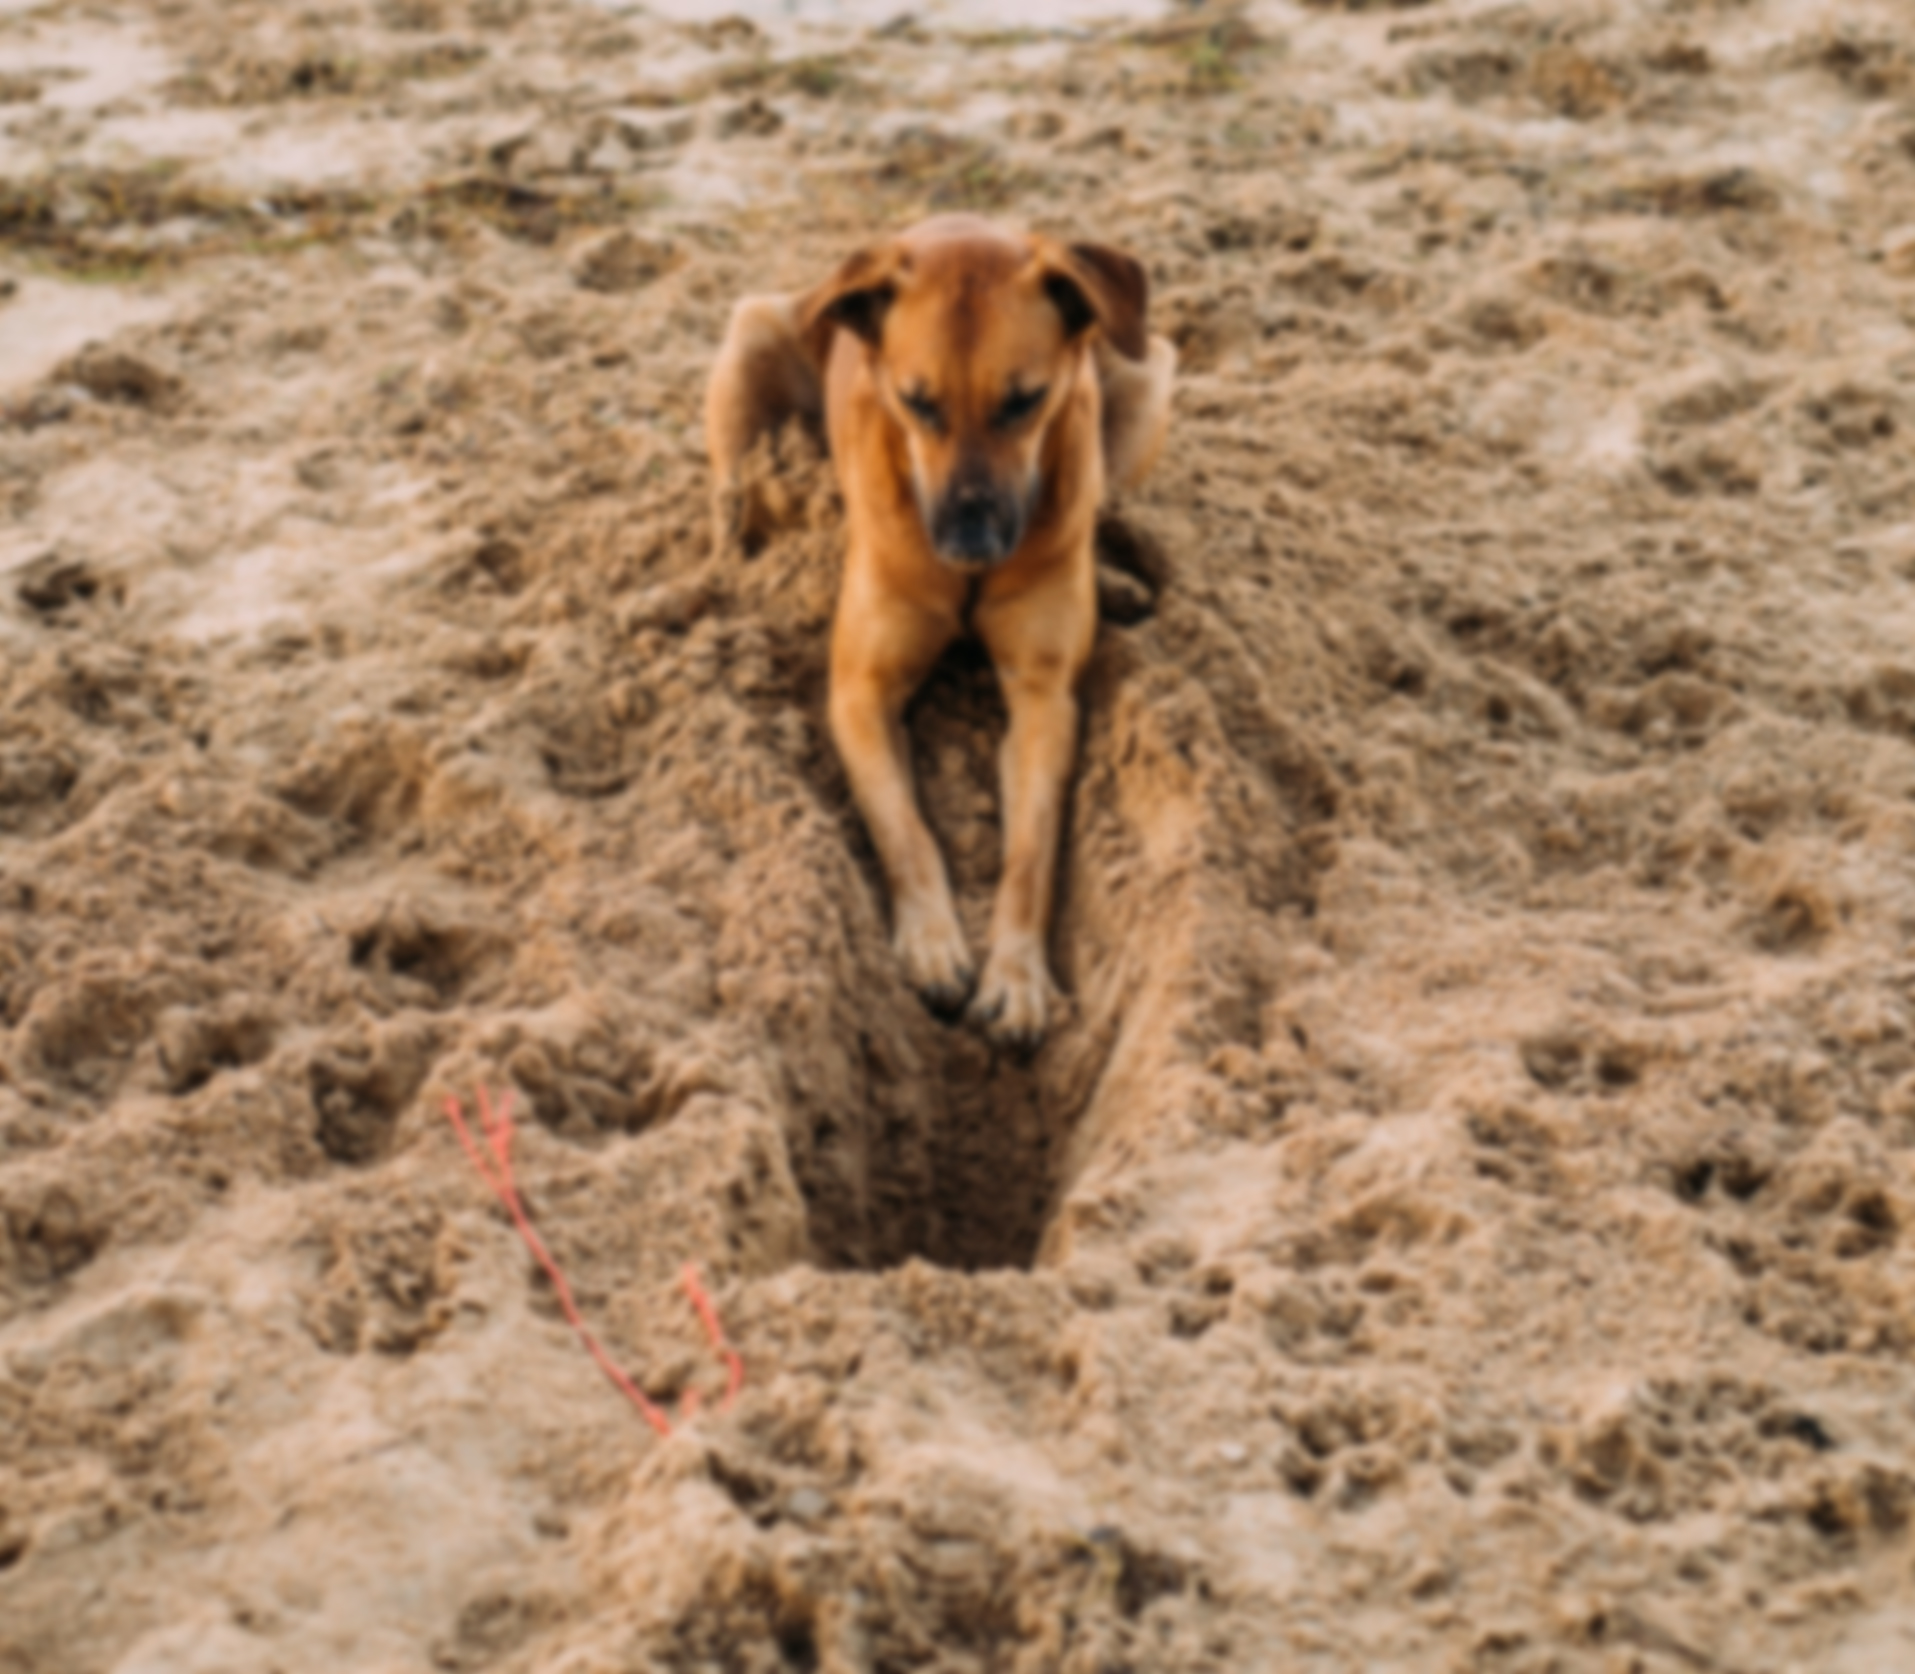 dog-digging-in-sand-blurred